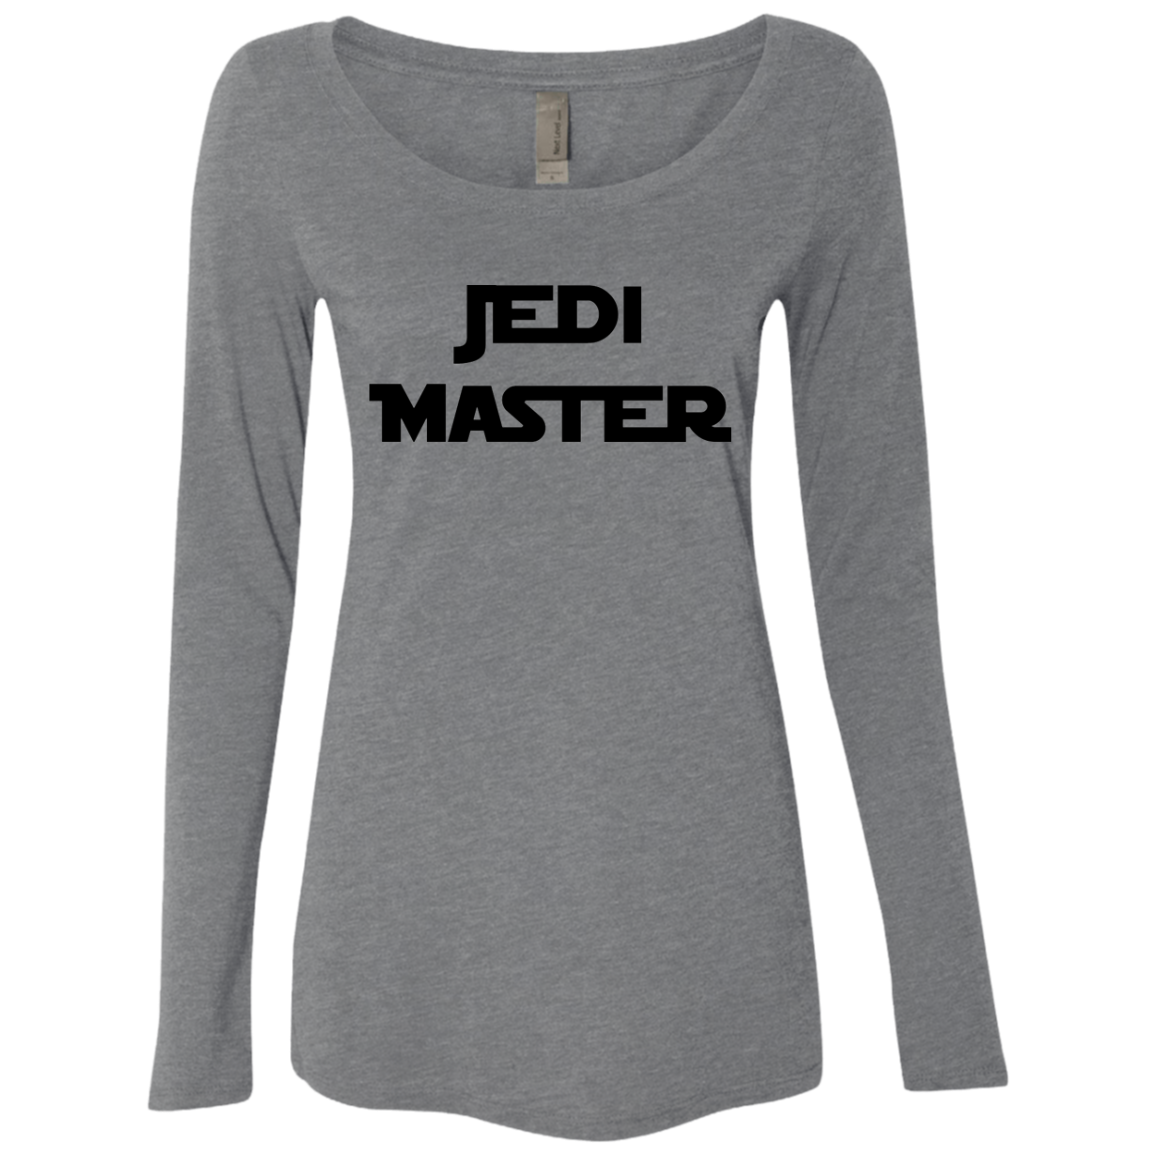 Jedi Master Star Wars Women's Long Sleeve Tee - Trendy Tees